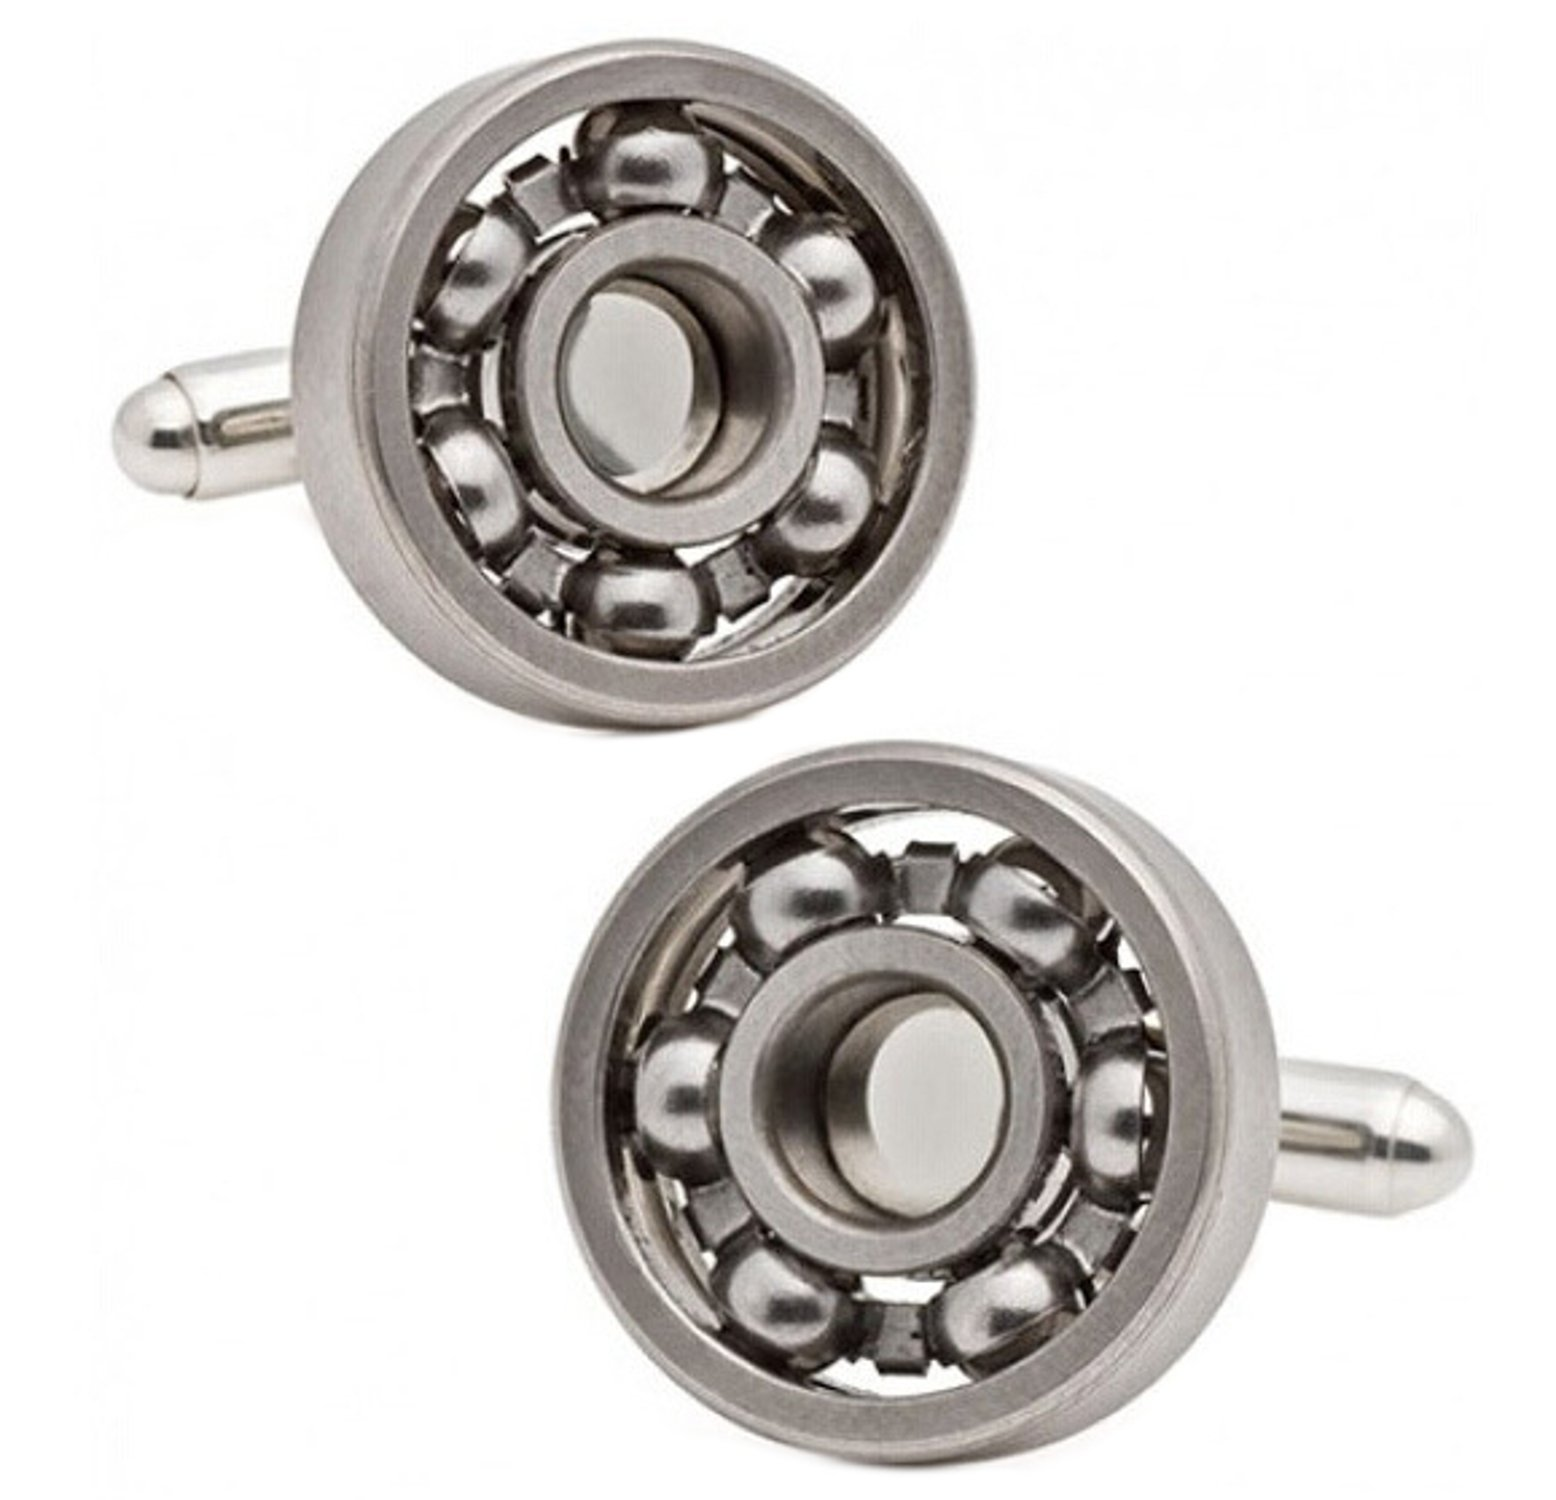 Unique Functioning Ball Bearing Engineering Mechanic Gift Cufflinks Direct (Cufflinks With Gift Bag)